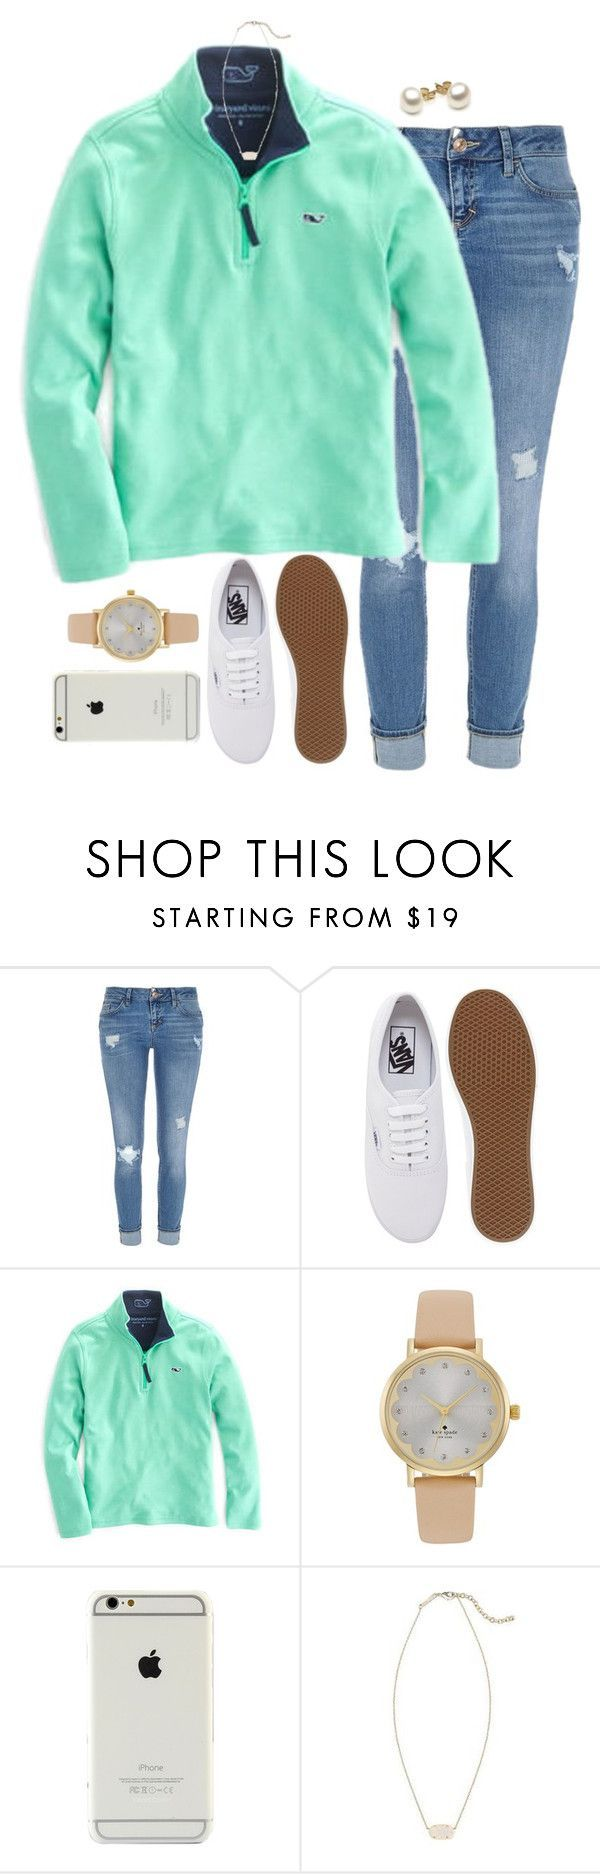 """back at it again with the white vans!!"" by evamstewart24 ❤ liked on Polyvore featuring River Island, Vans, Vineyard Vines, Kate Spade and Kendra Scott"